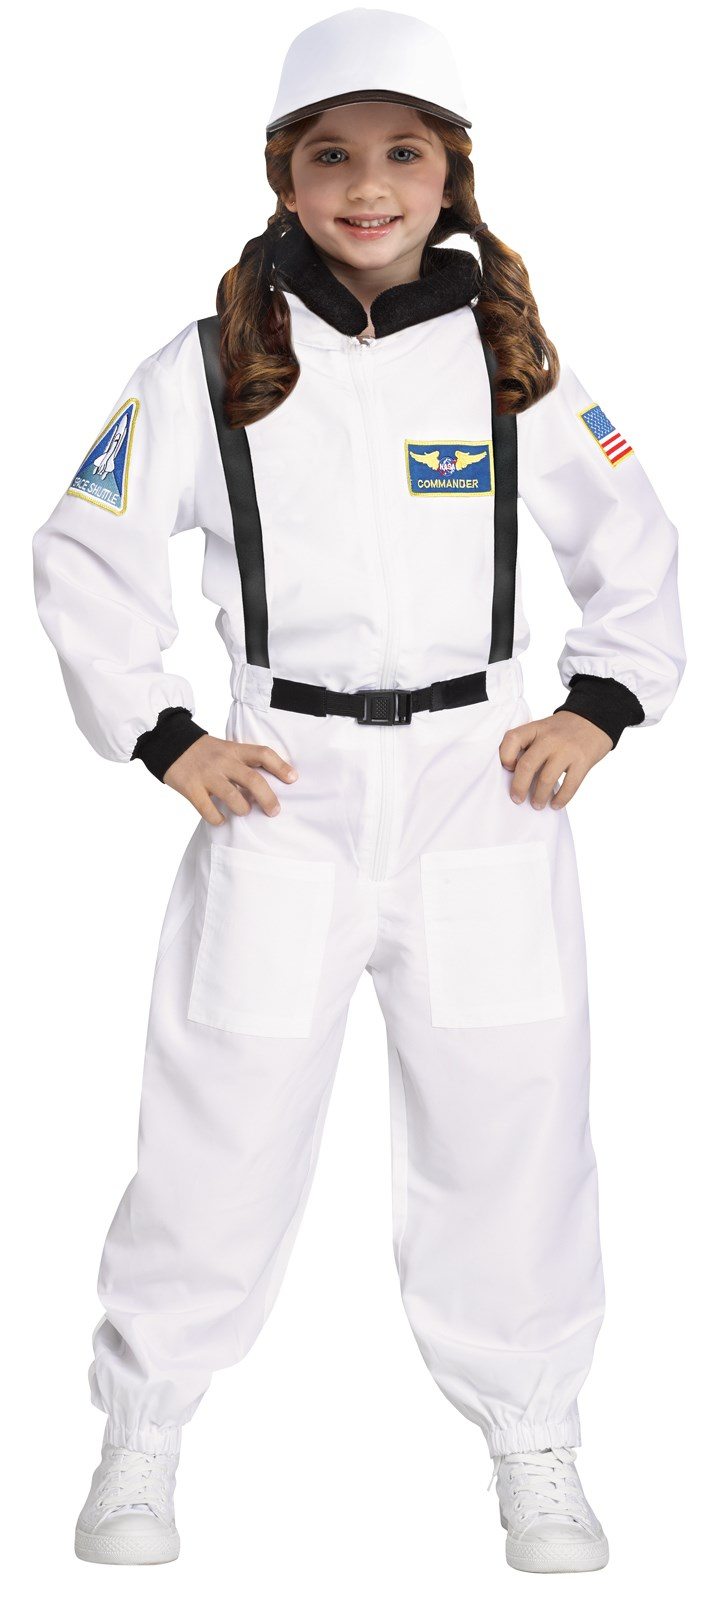 Toddler Deluxe Shuttle Commander Costume